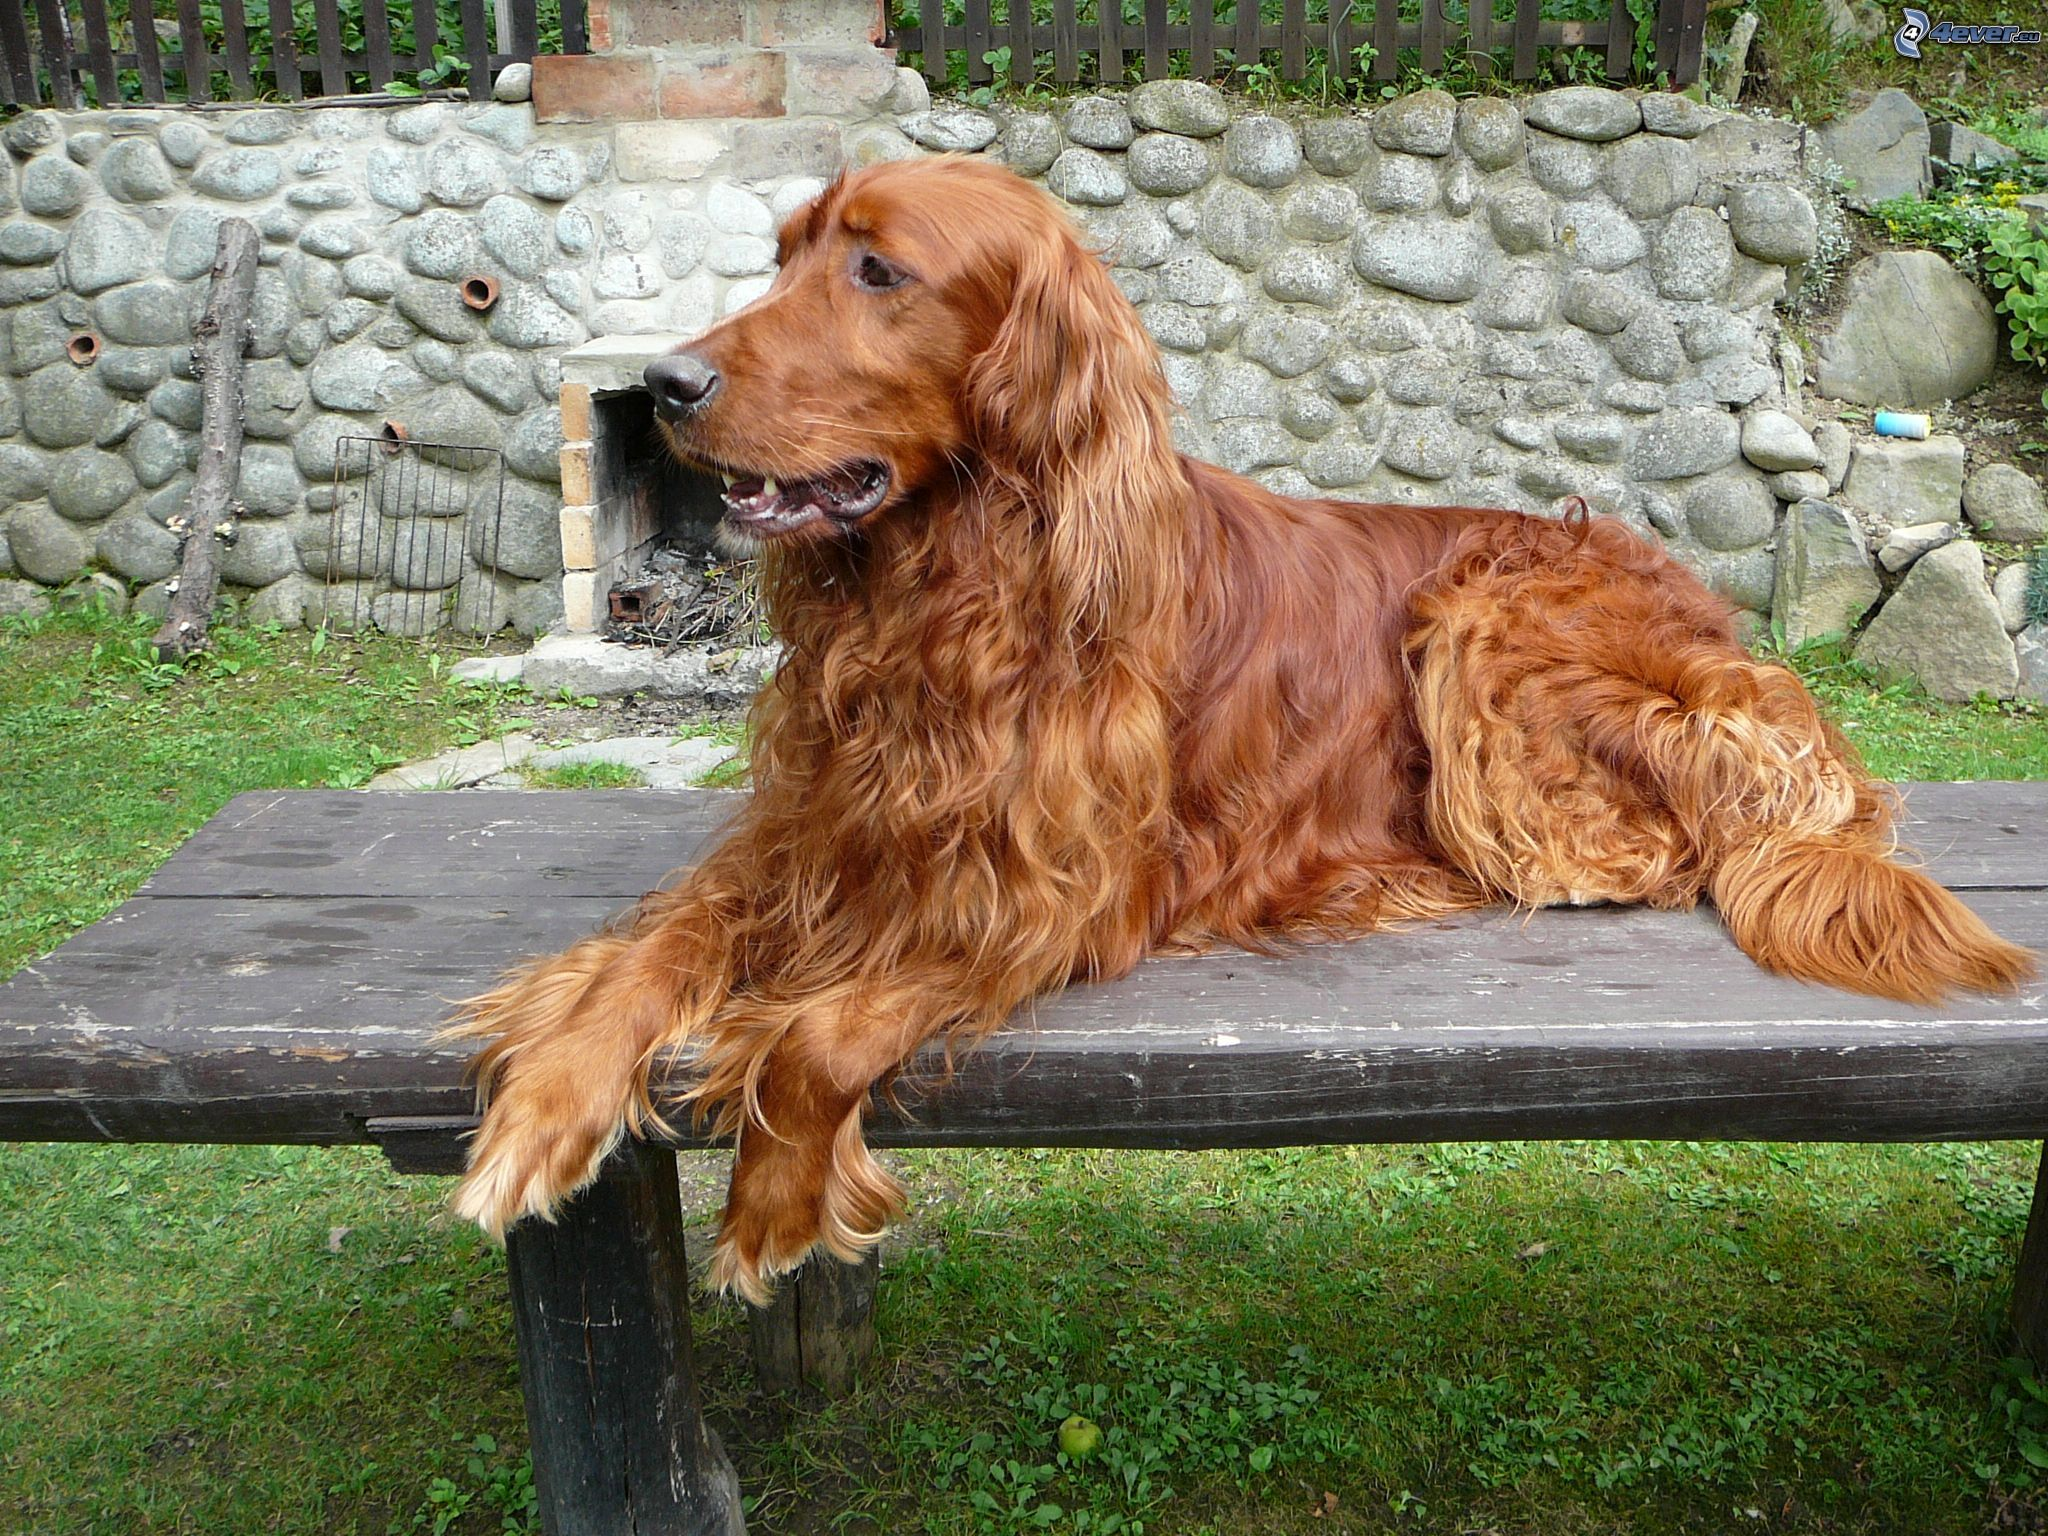 Bonny Irish Setter dog  wallpaper